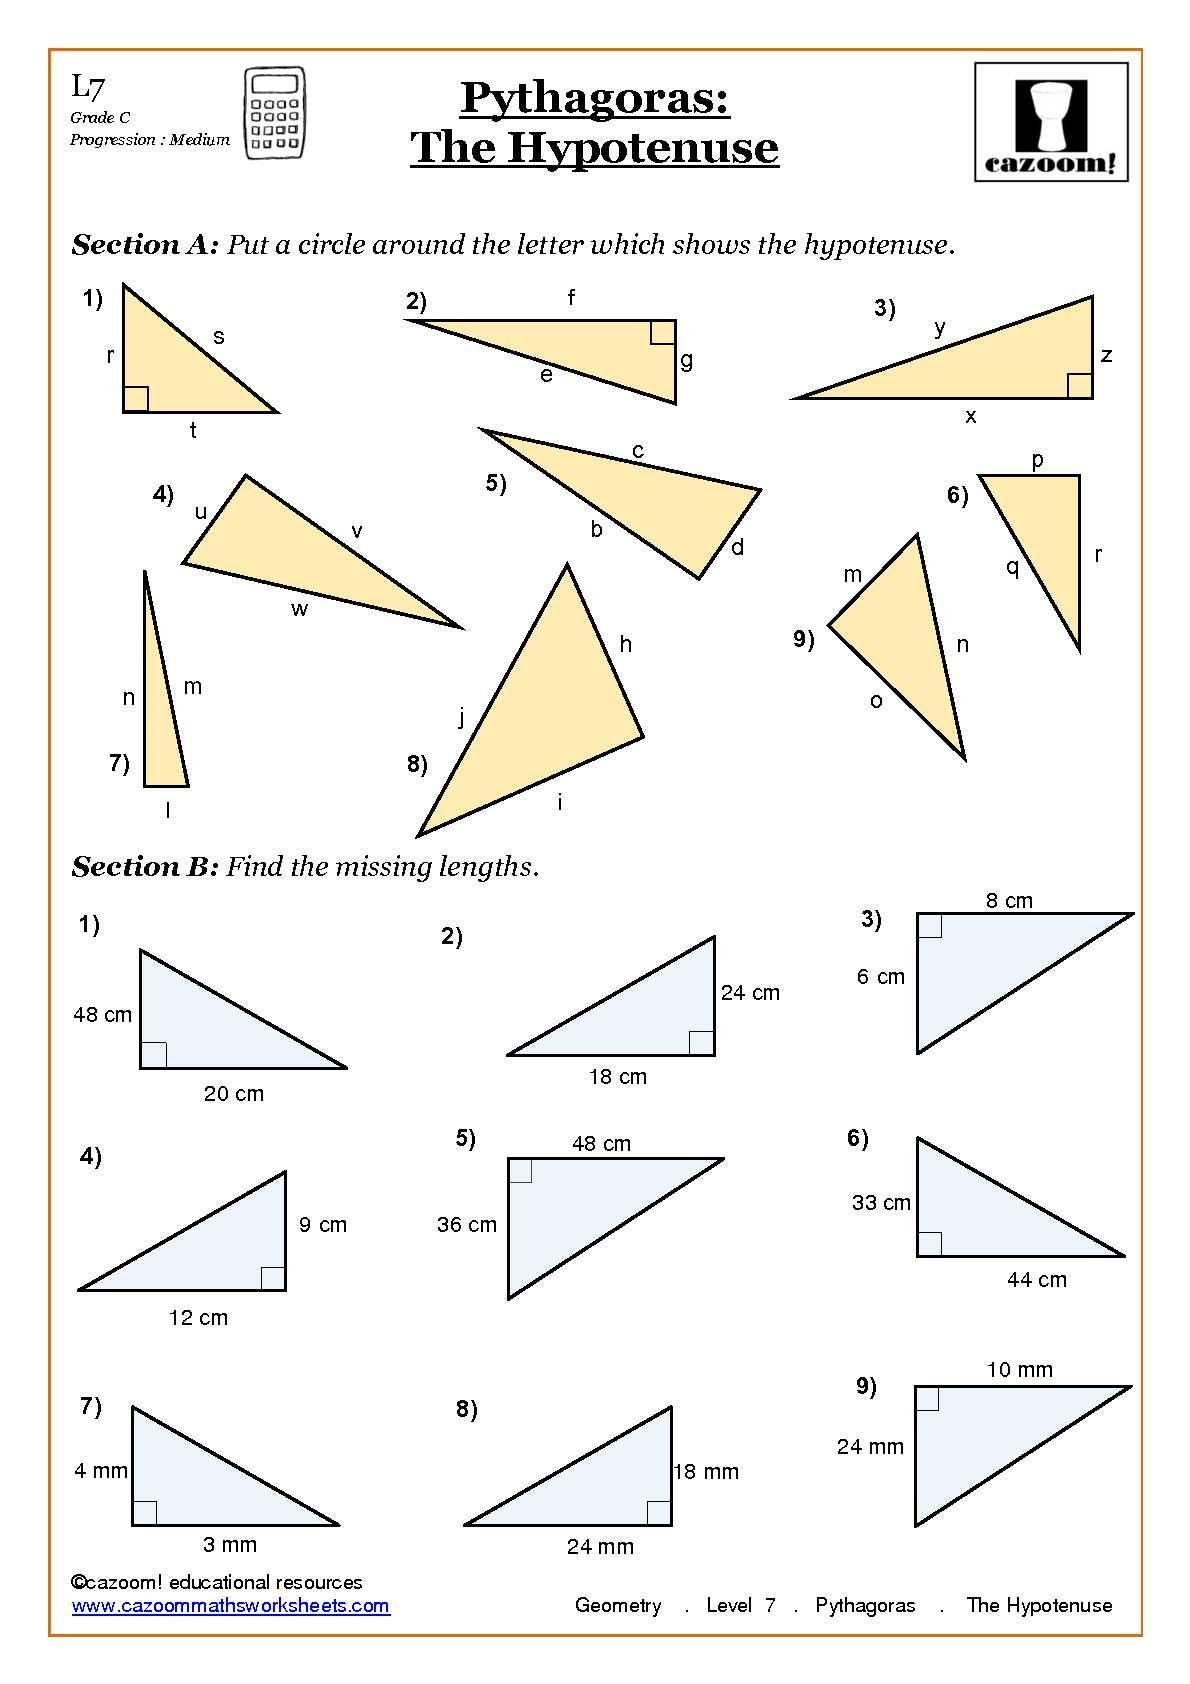 Trigonometry and Pythagoras Worksheets | Worksheets, Maths and ...